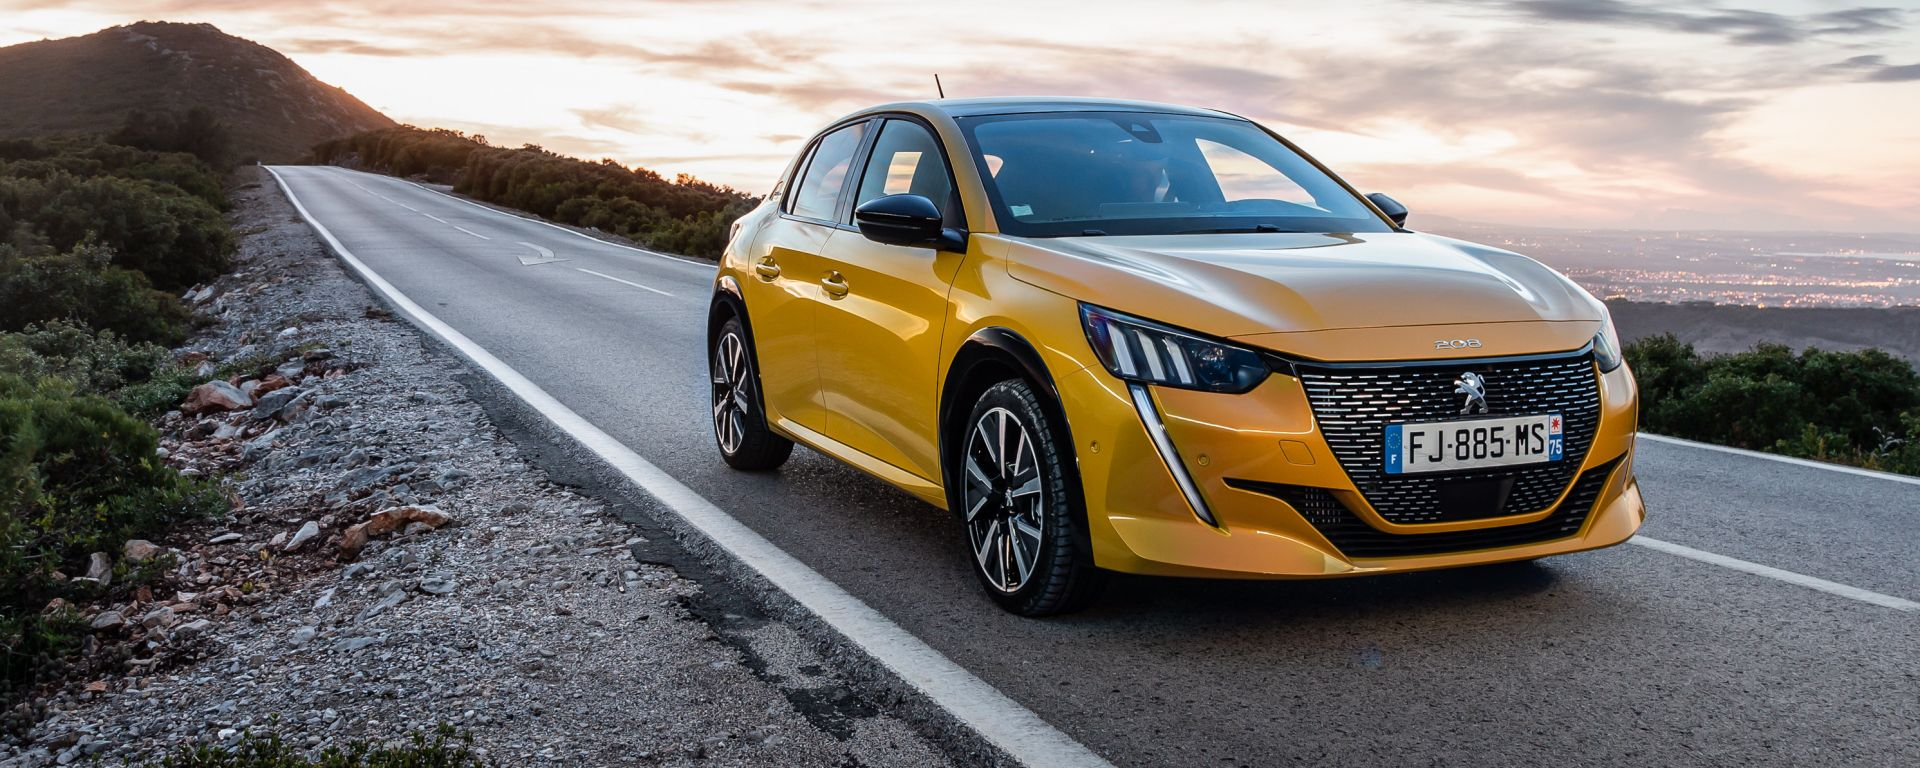 Nuova Peugeot 208 2019: la prova su strada in video